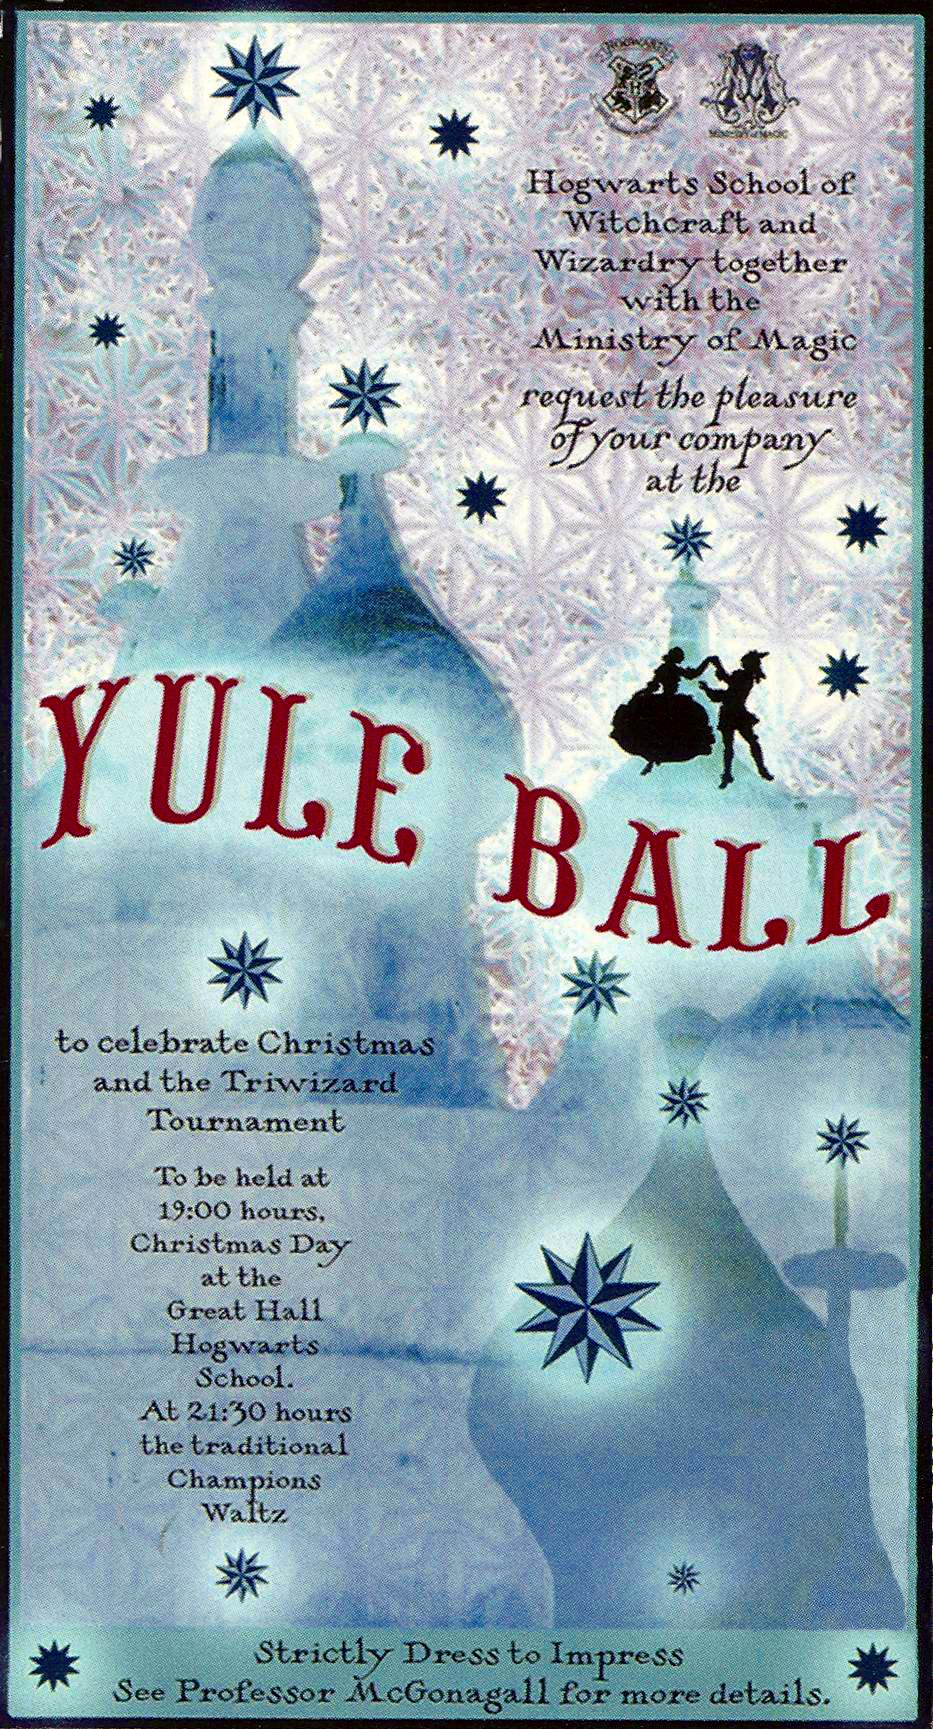 Yule Ball Invitation The Magical World Of Harry Potter Pinterest